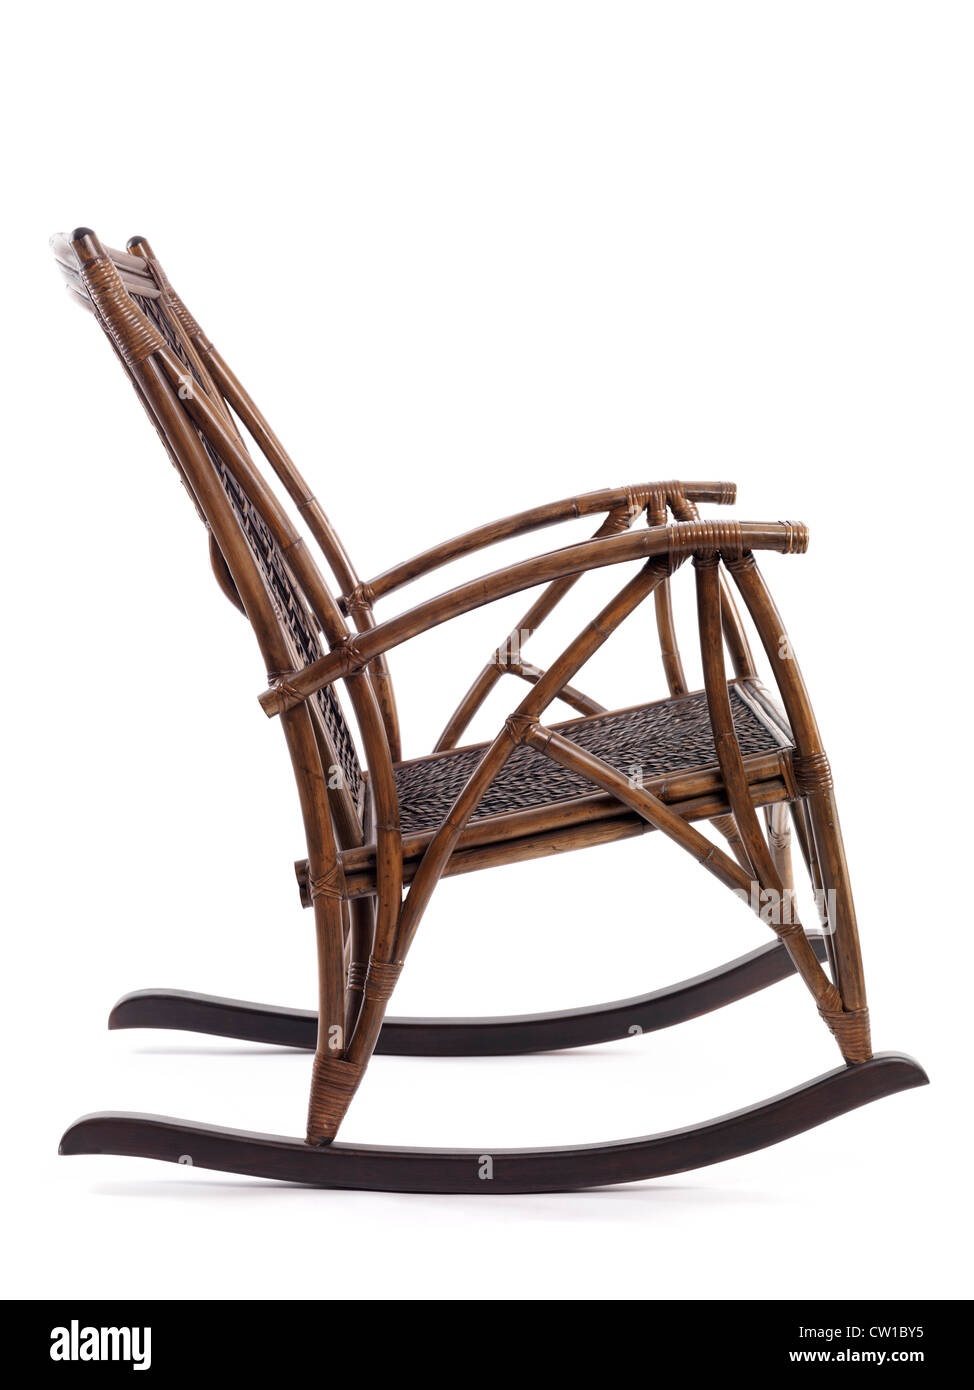 Antique Wooden Rocking Chair Side View Isolated On White Background